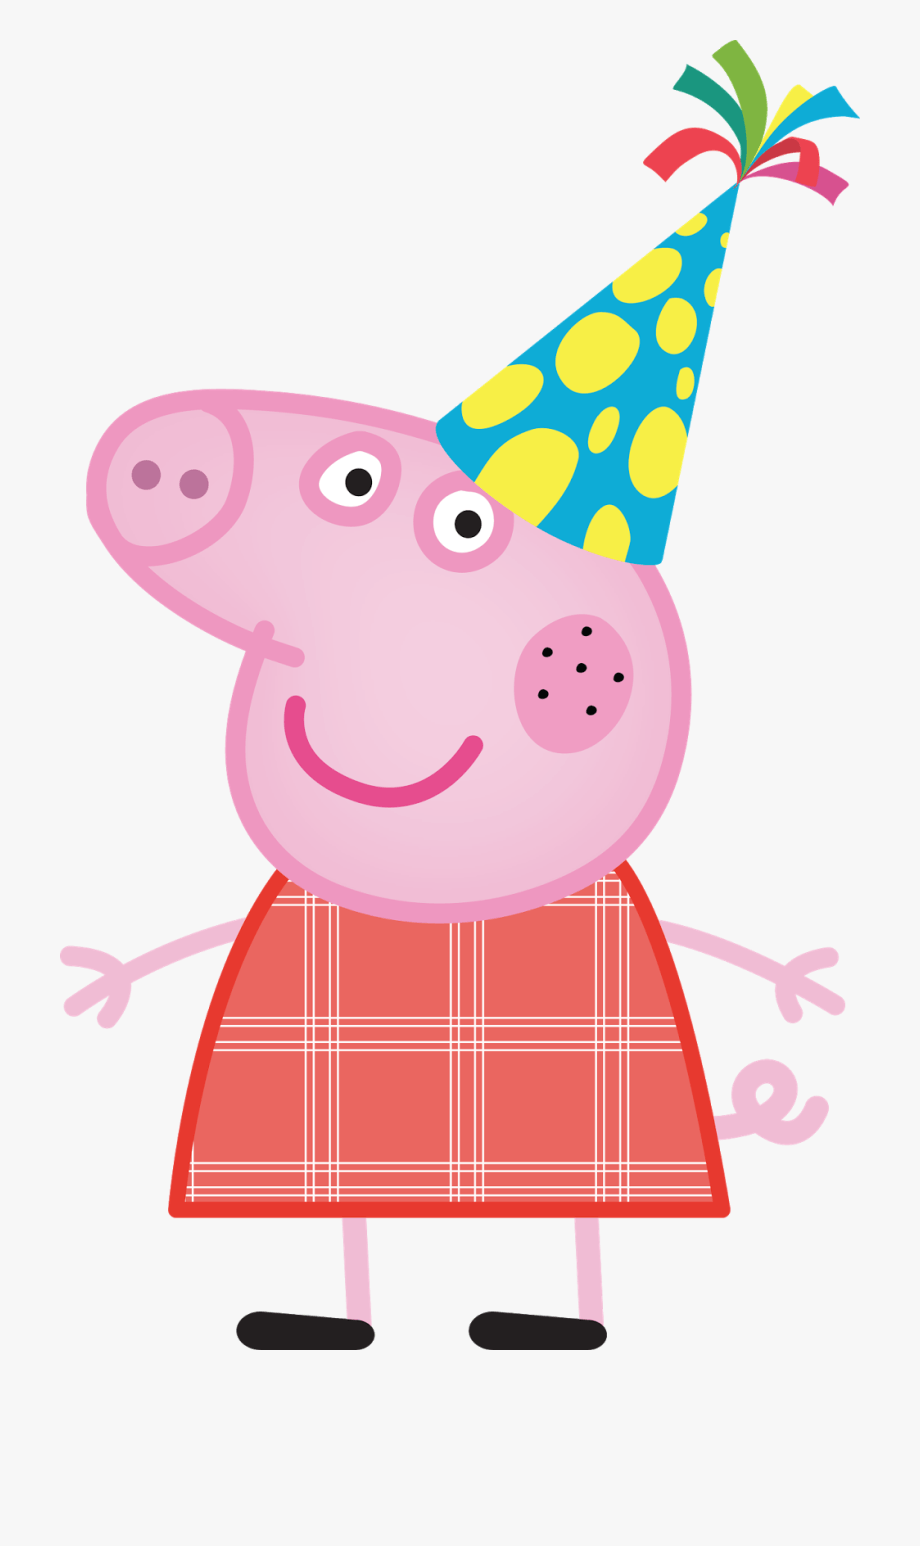 Peppa Pig Wallpaper: Peppa Pig Png